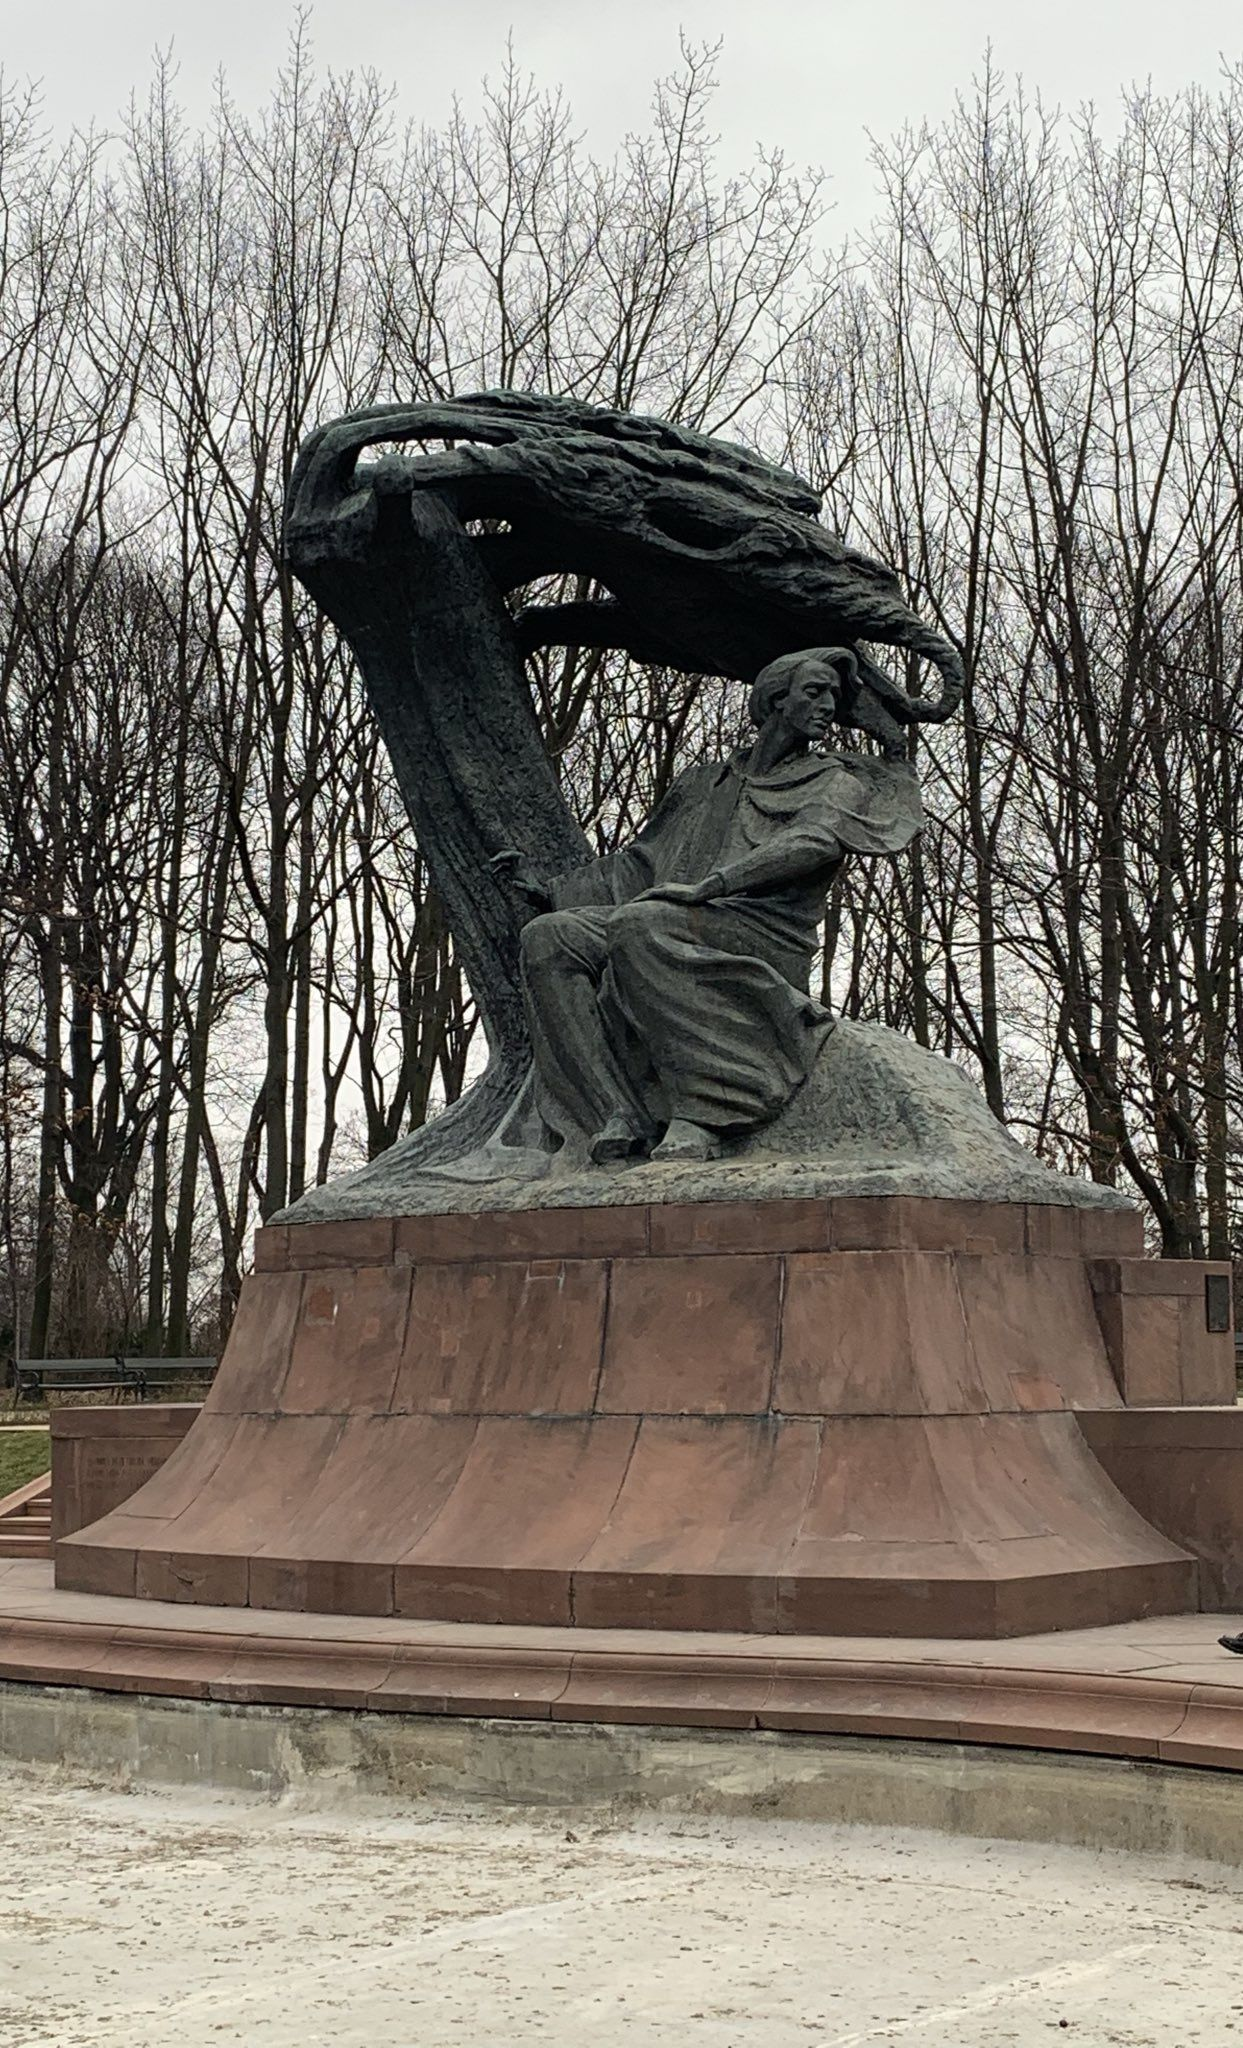 a49116127262992793f962e55aea18d4 - The Monument To Chopin In The Luxembourg Gardens